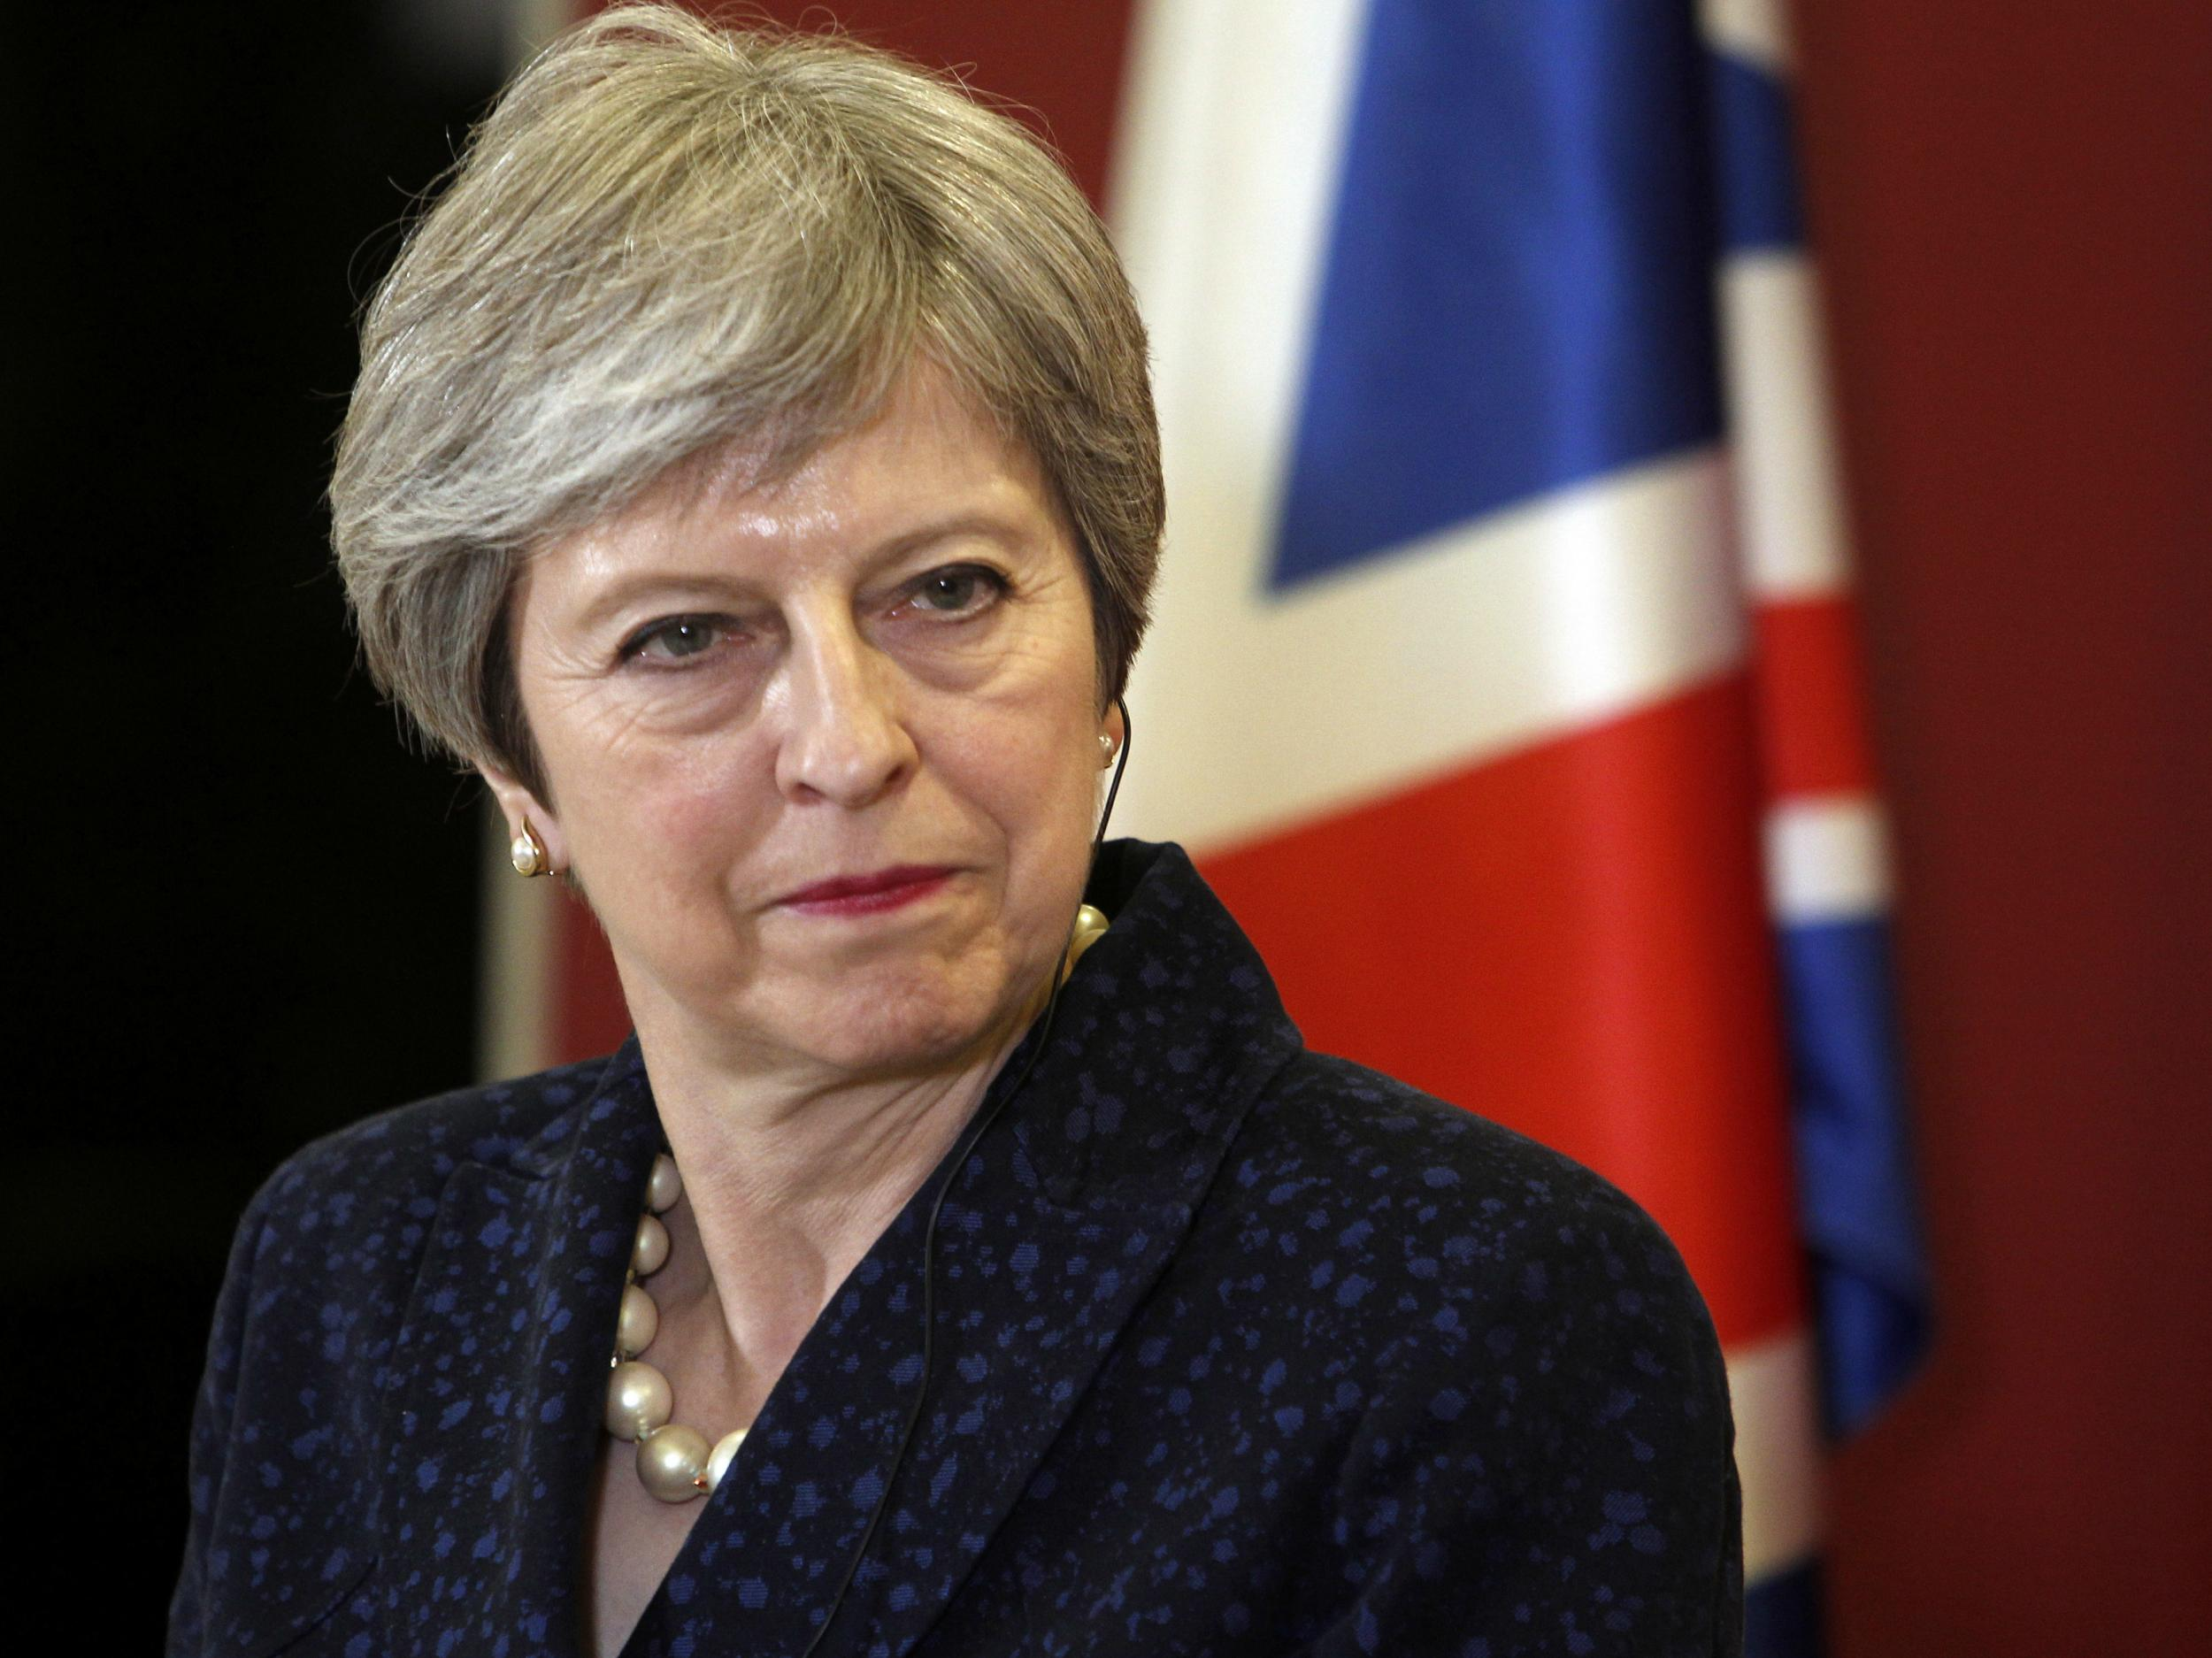 'More than 50' Tory MPs prepared to defy Theresa May to stop no-deal Brexit        Shape    Created with Sketch.                                                                                                        Brexit so far: in picturesInside Politics newsletterInside Politics newsletter